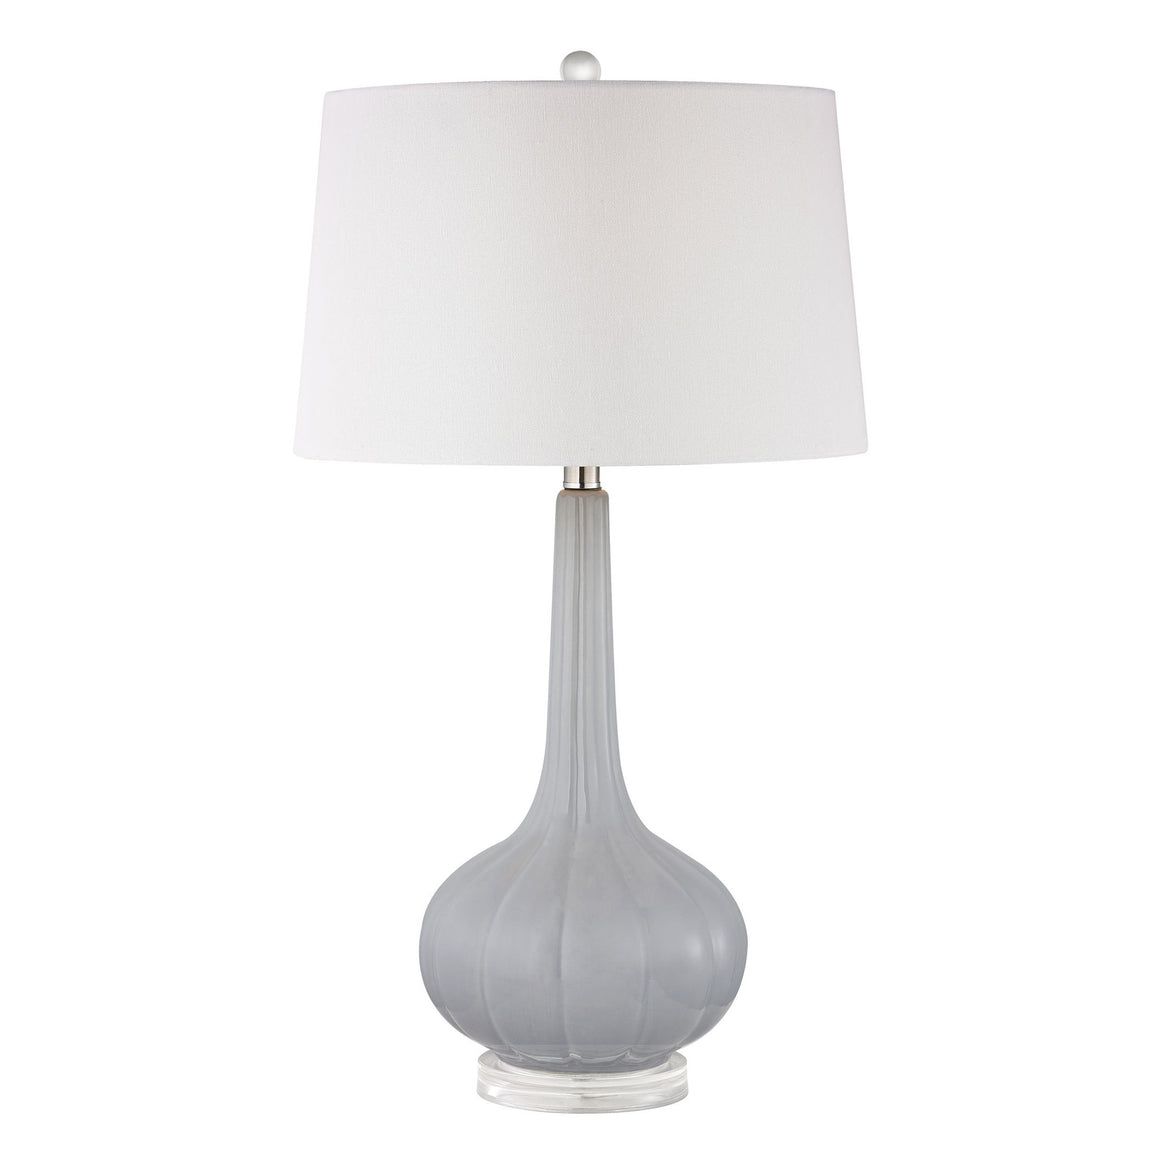 Abbey Lane Ceramic Table Lamp in Pastel Blue D2460